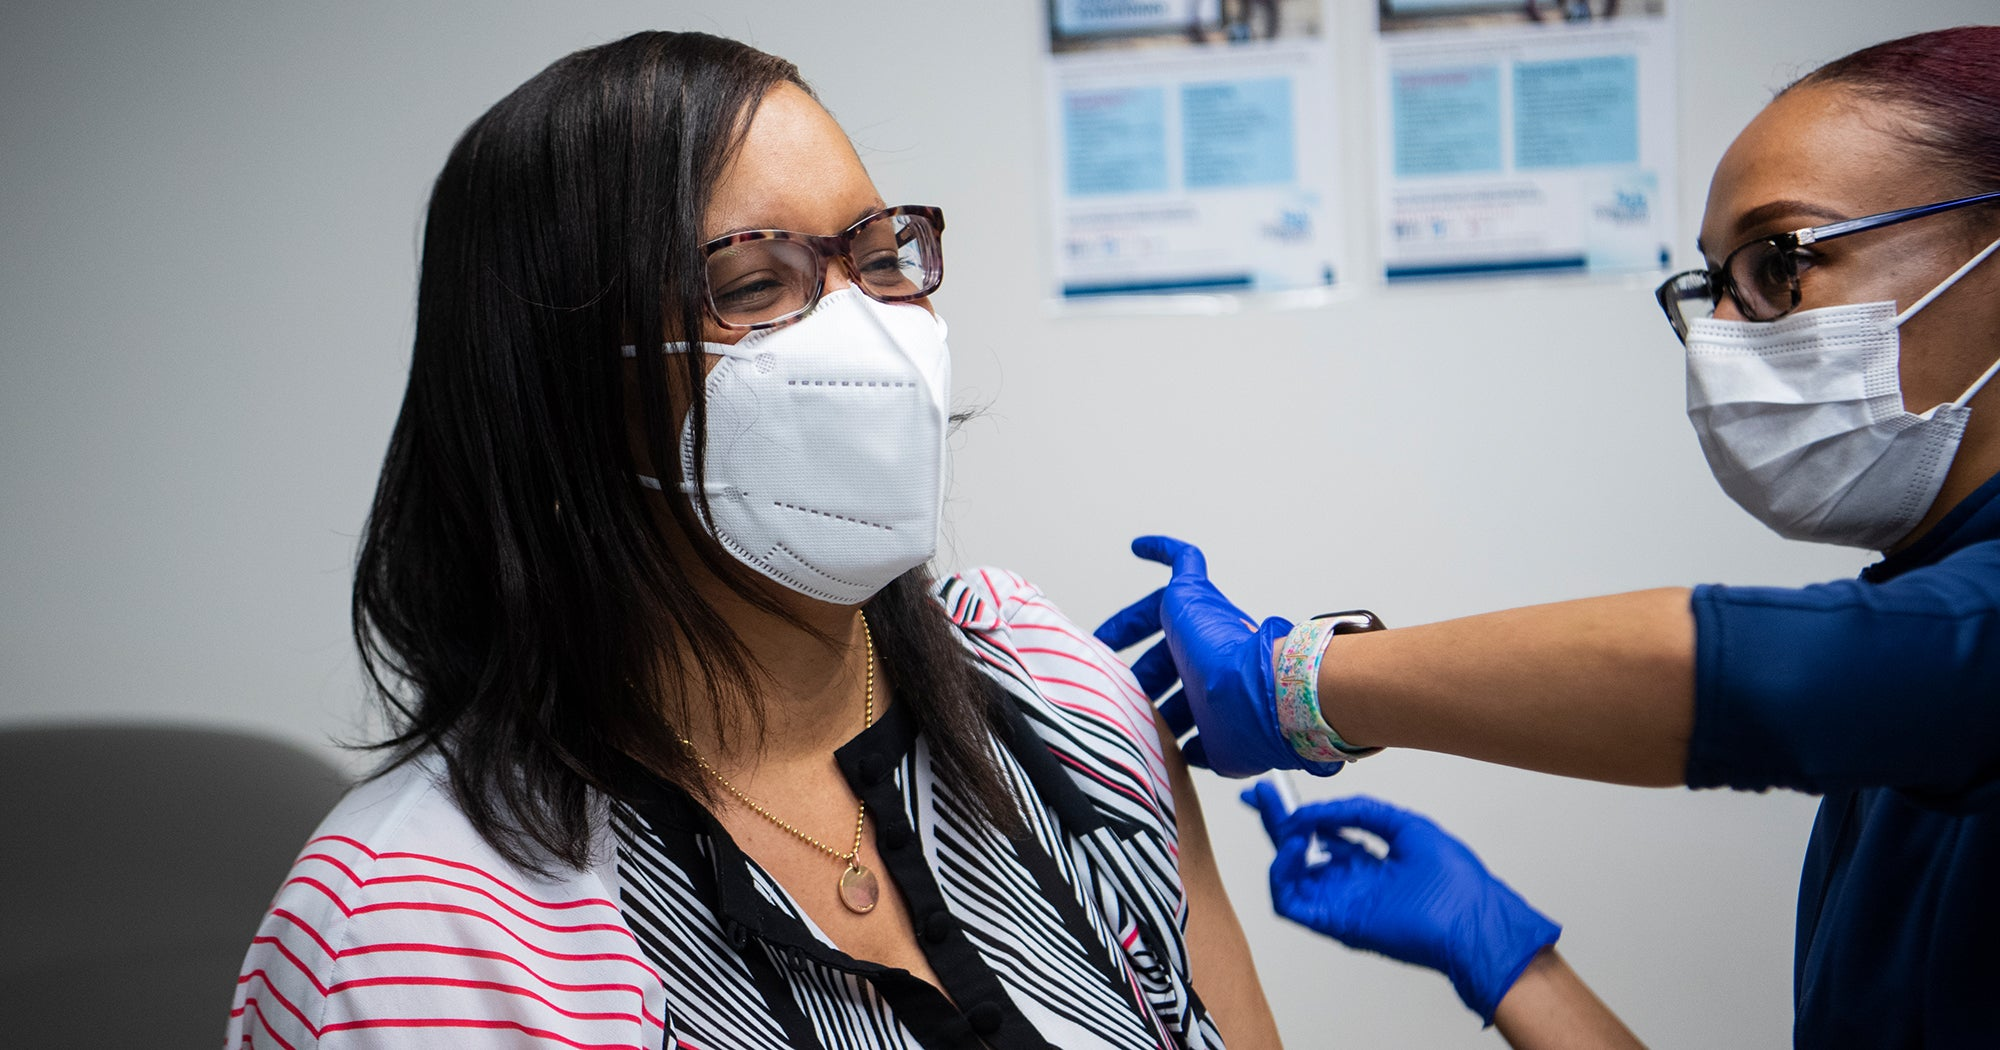 Is It Okay To Delay Your Second Vaccine Shot?